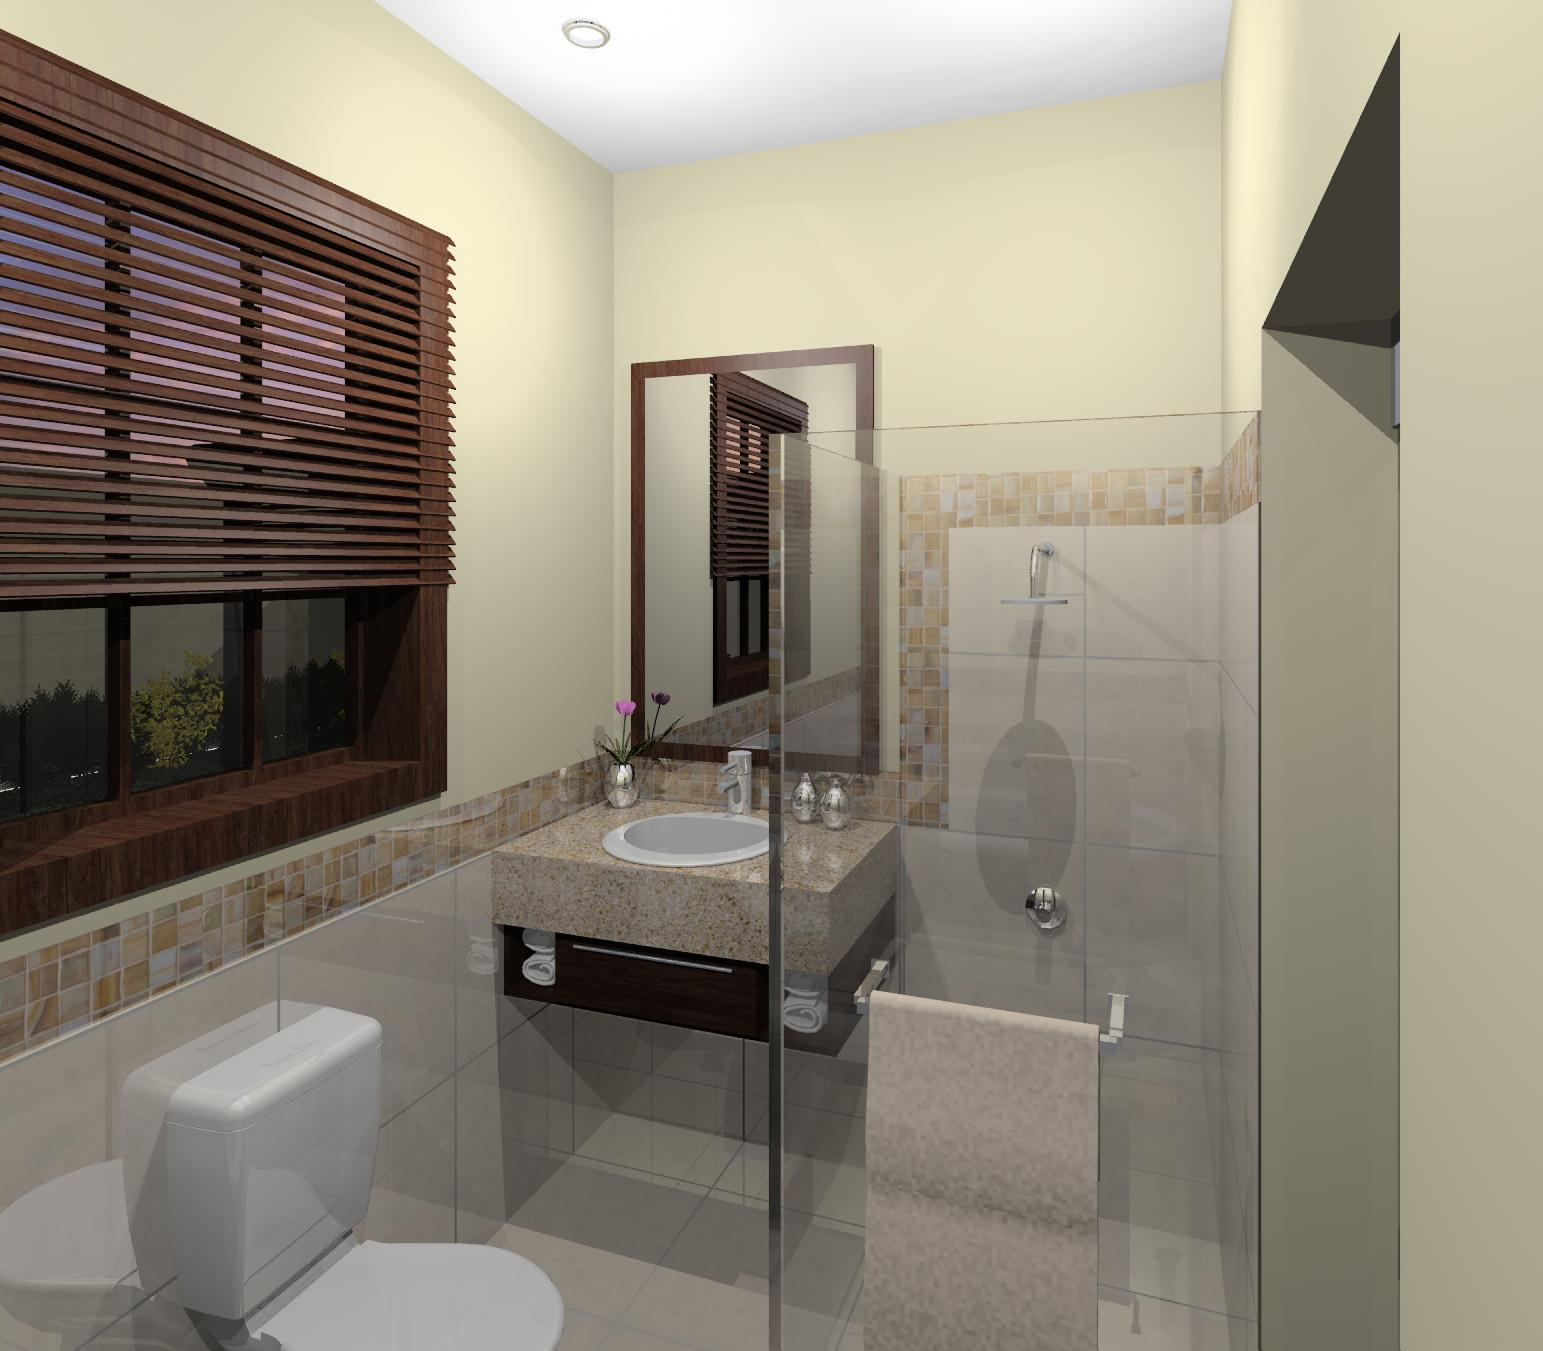 3d renderings by knoesen rene at for 5 x 4 bathroom designs